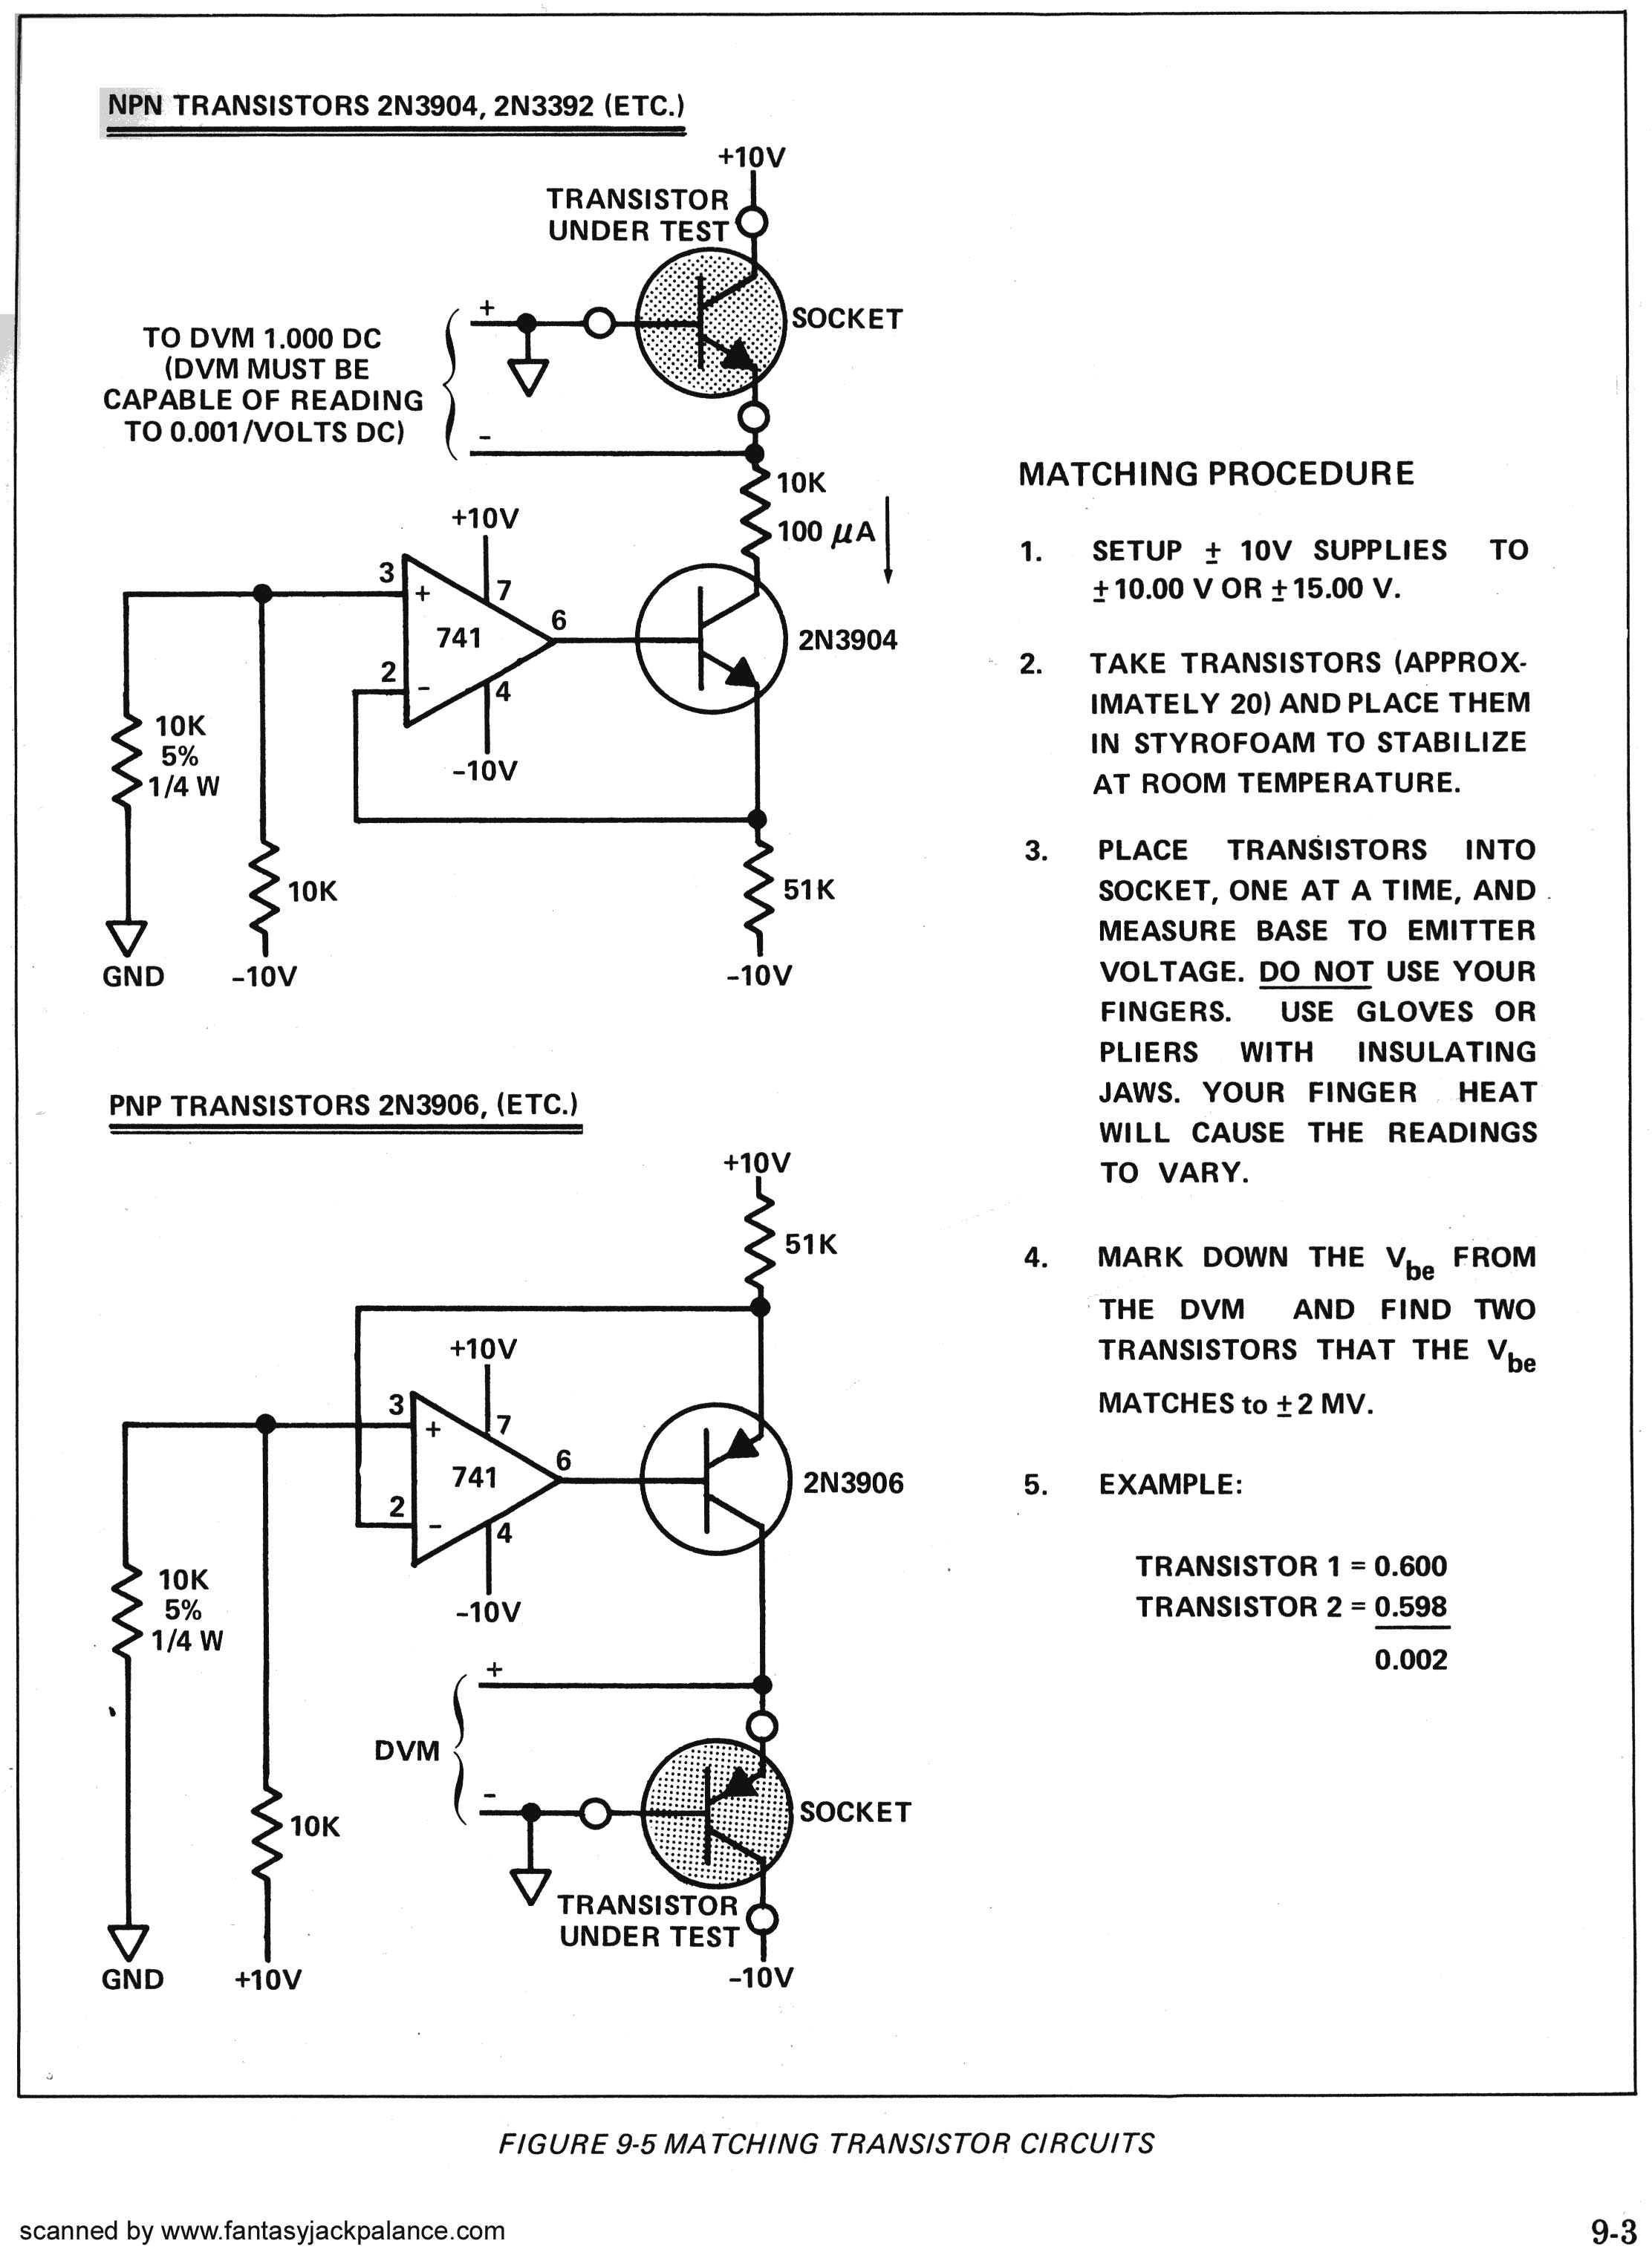 Dragonfly alley motm synthesizer moog transistor matching tester heres the schematic diagram from the mini moog manual click on the image for a larger version its set up for 10v power supply and it has a mistake in pooptronica Image collections